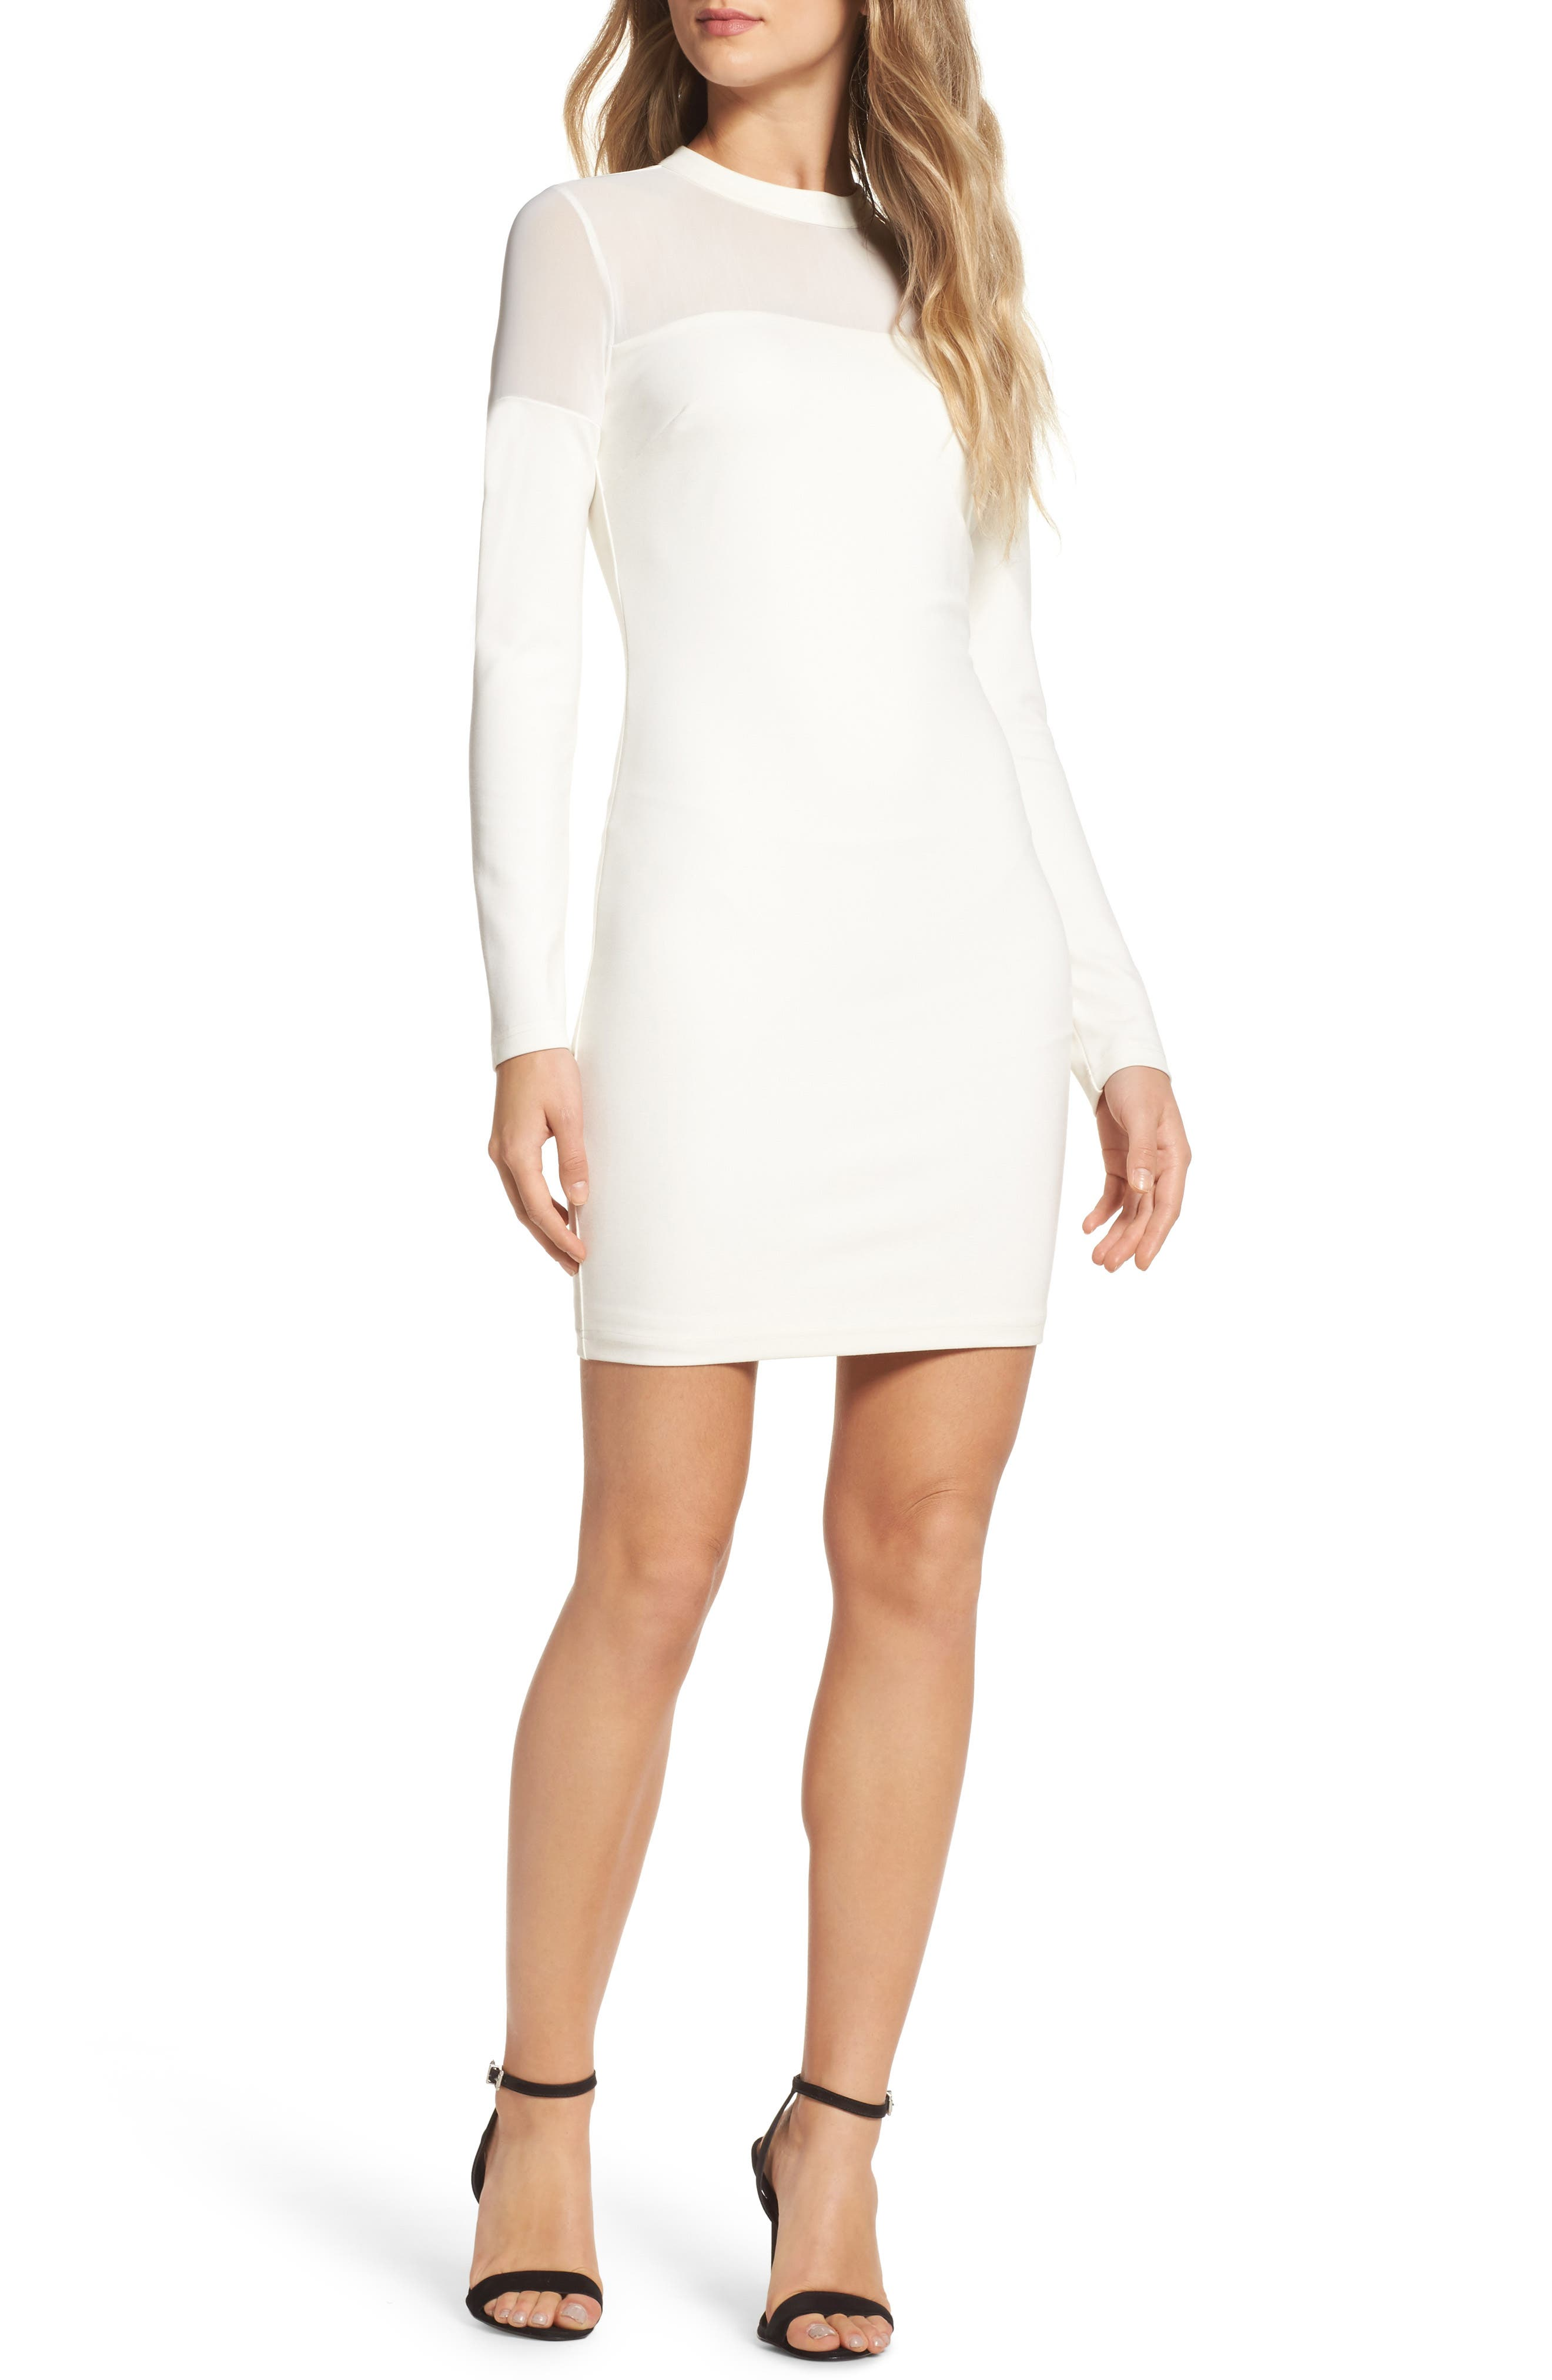 Outlaws Minidress,                         Main,                         color, Ivory